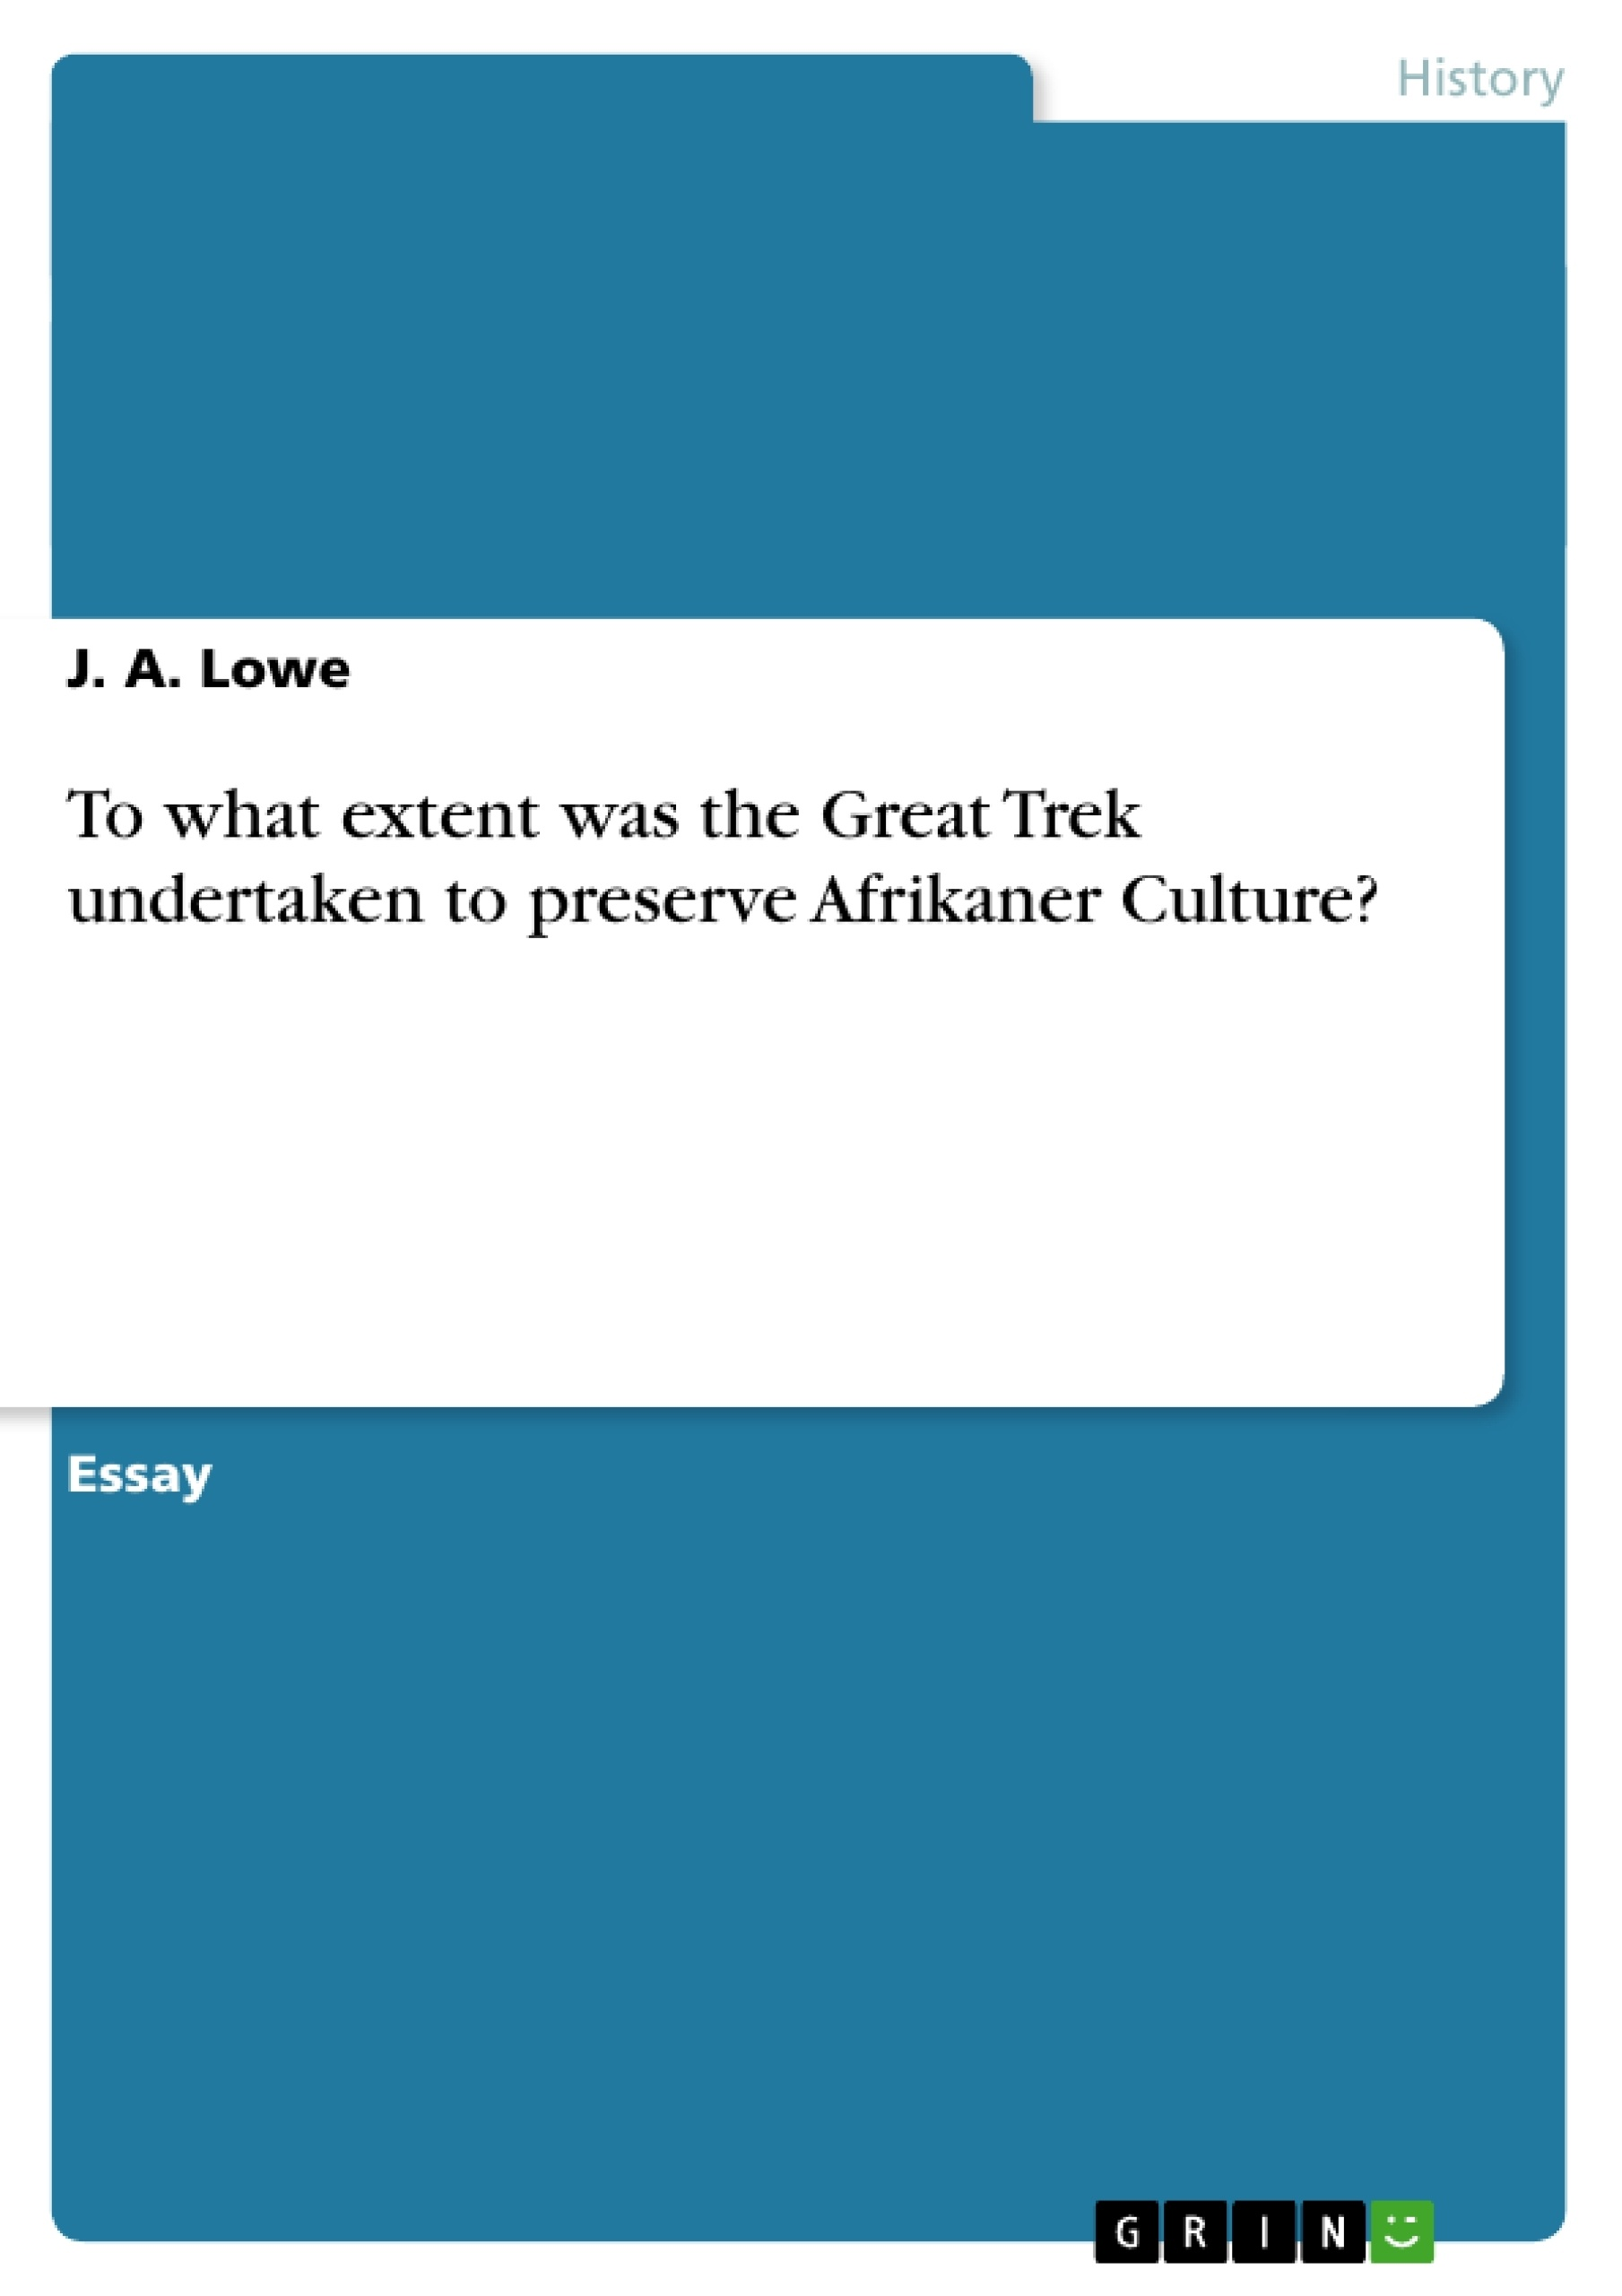 Title: To what extent was the Great Trek undertaken to preserve Afrikaner Culture?